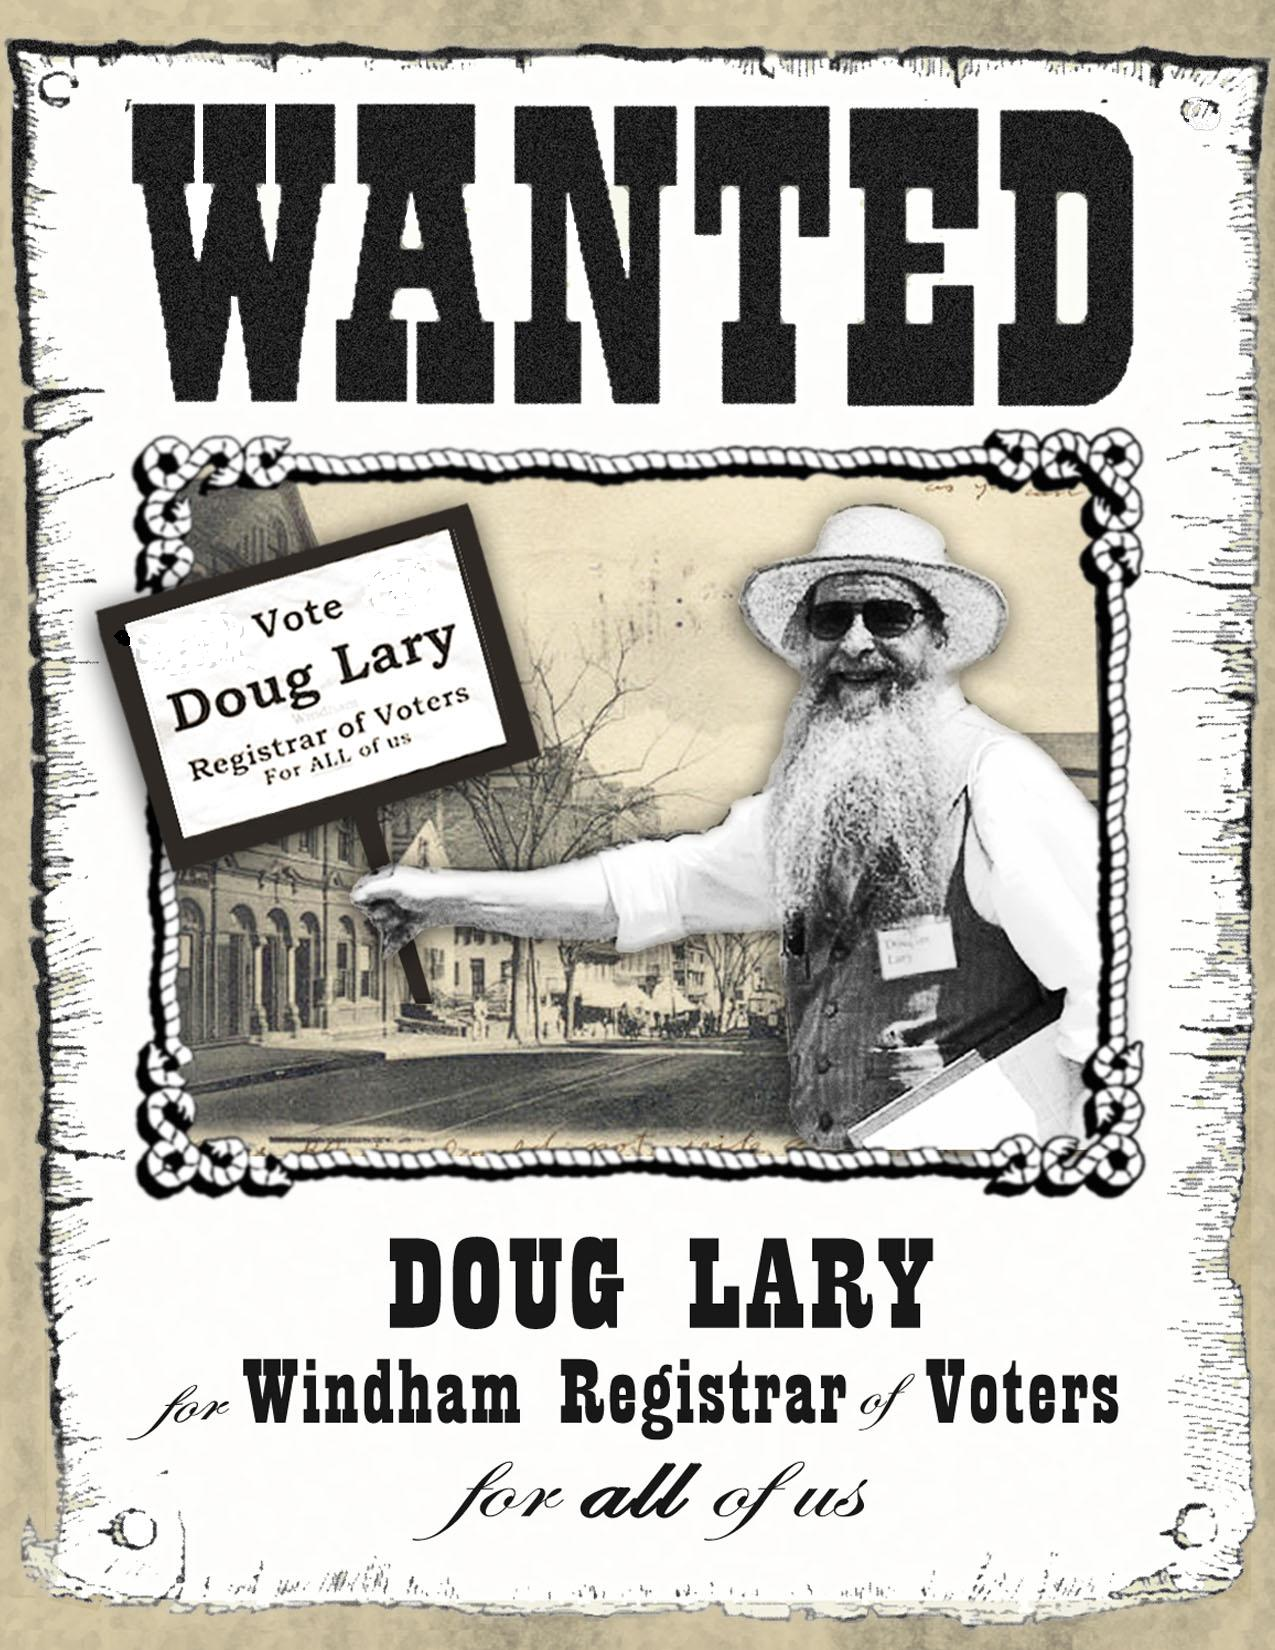 Lary wanted poster